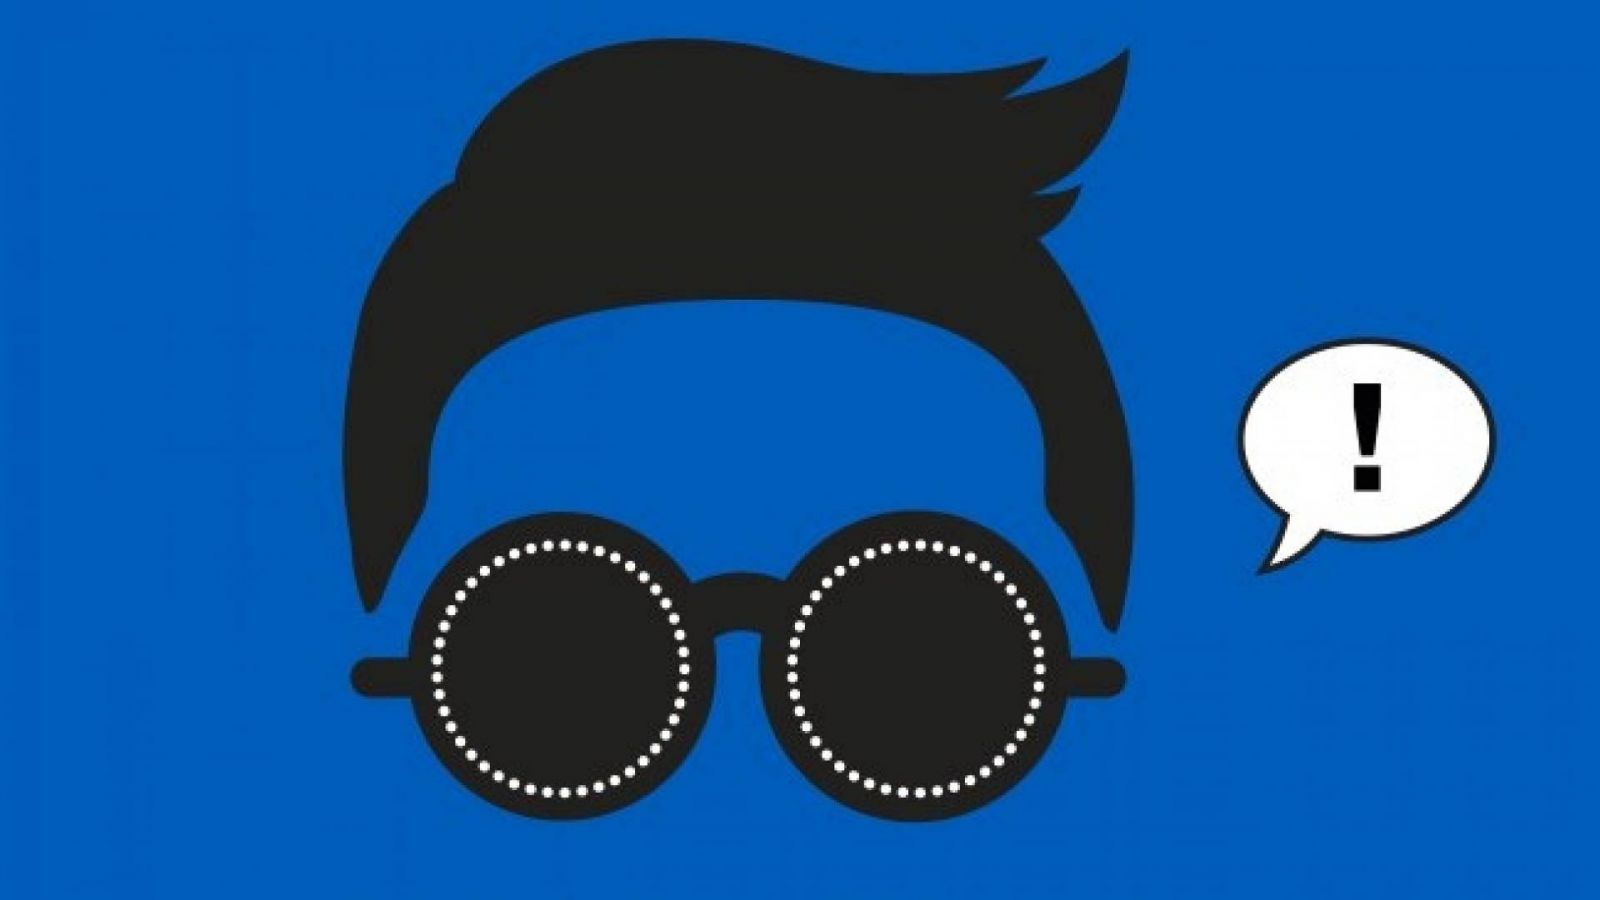 PSY to collaborate with Jencarlos Canela © PSY. All Rights Reserved.